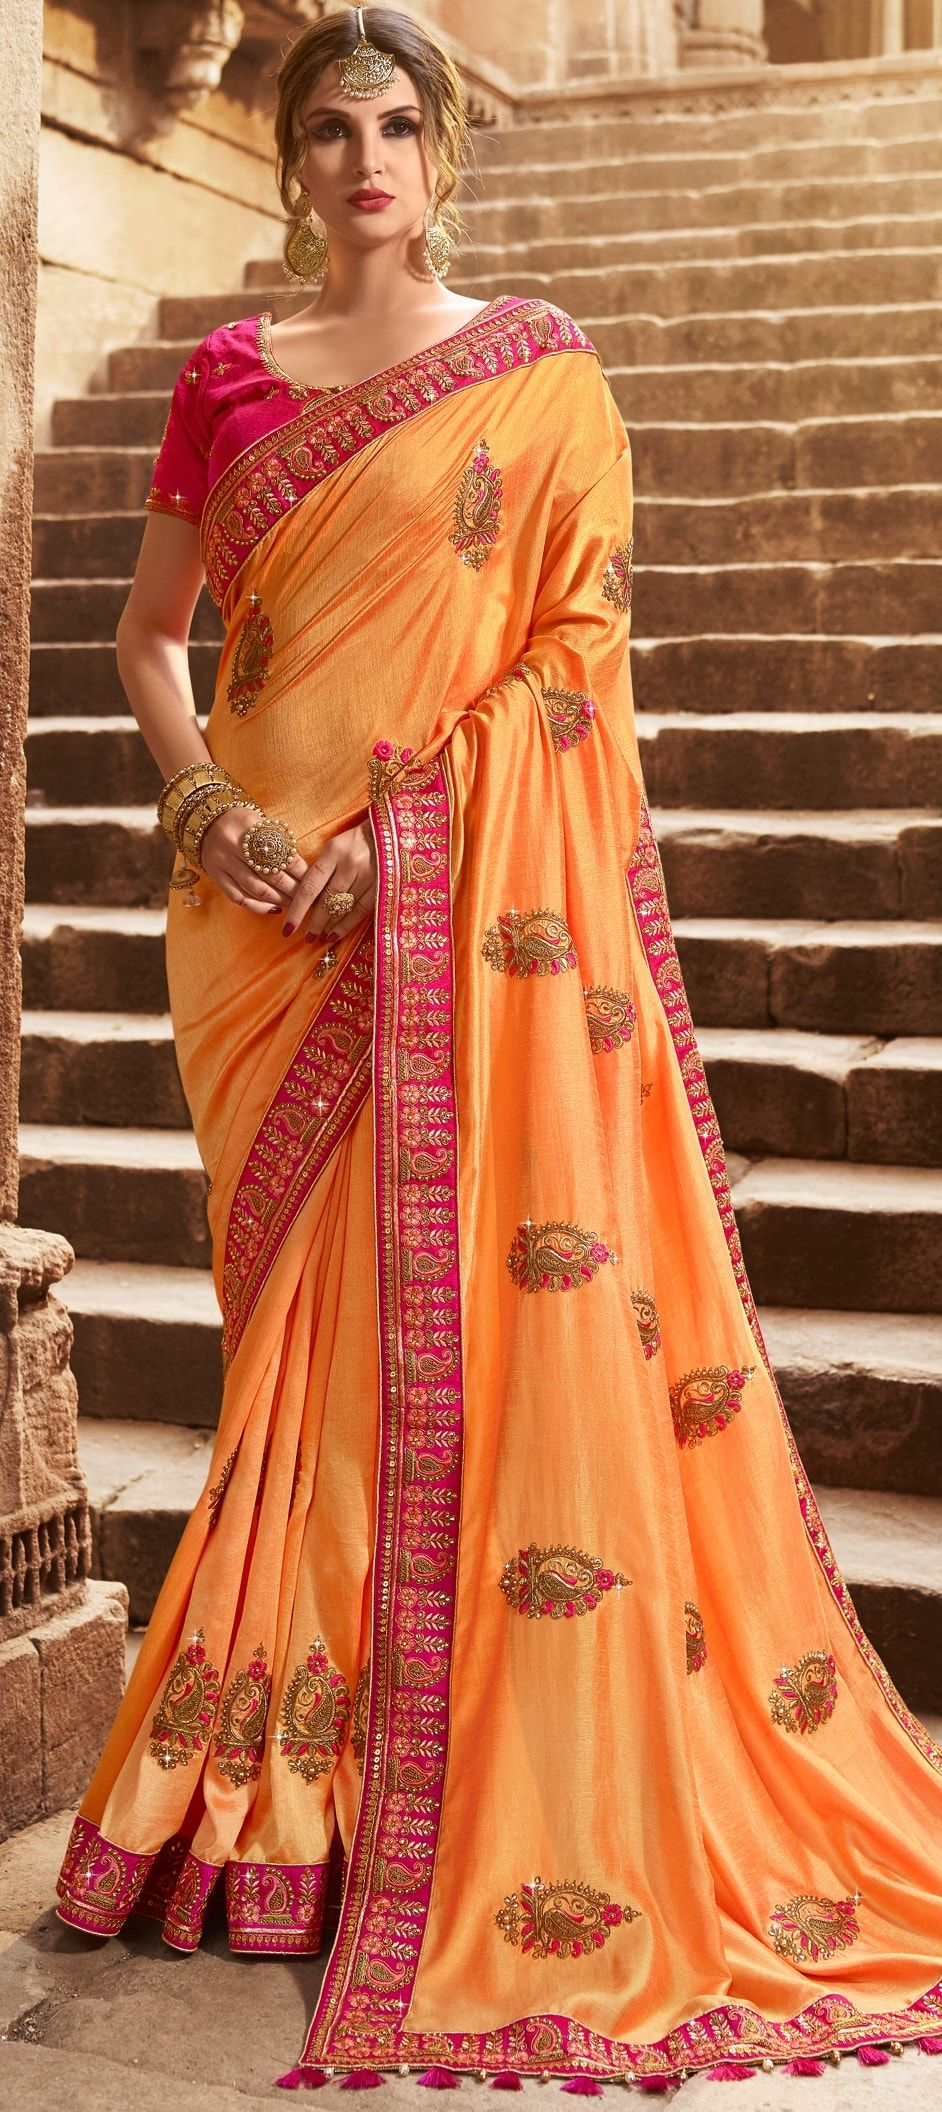 0d2e0b263e 772792: Orange color family Party Wear Sarees with matching ...